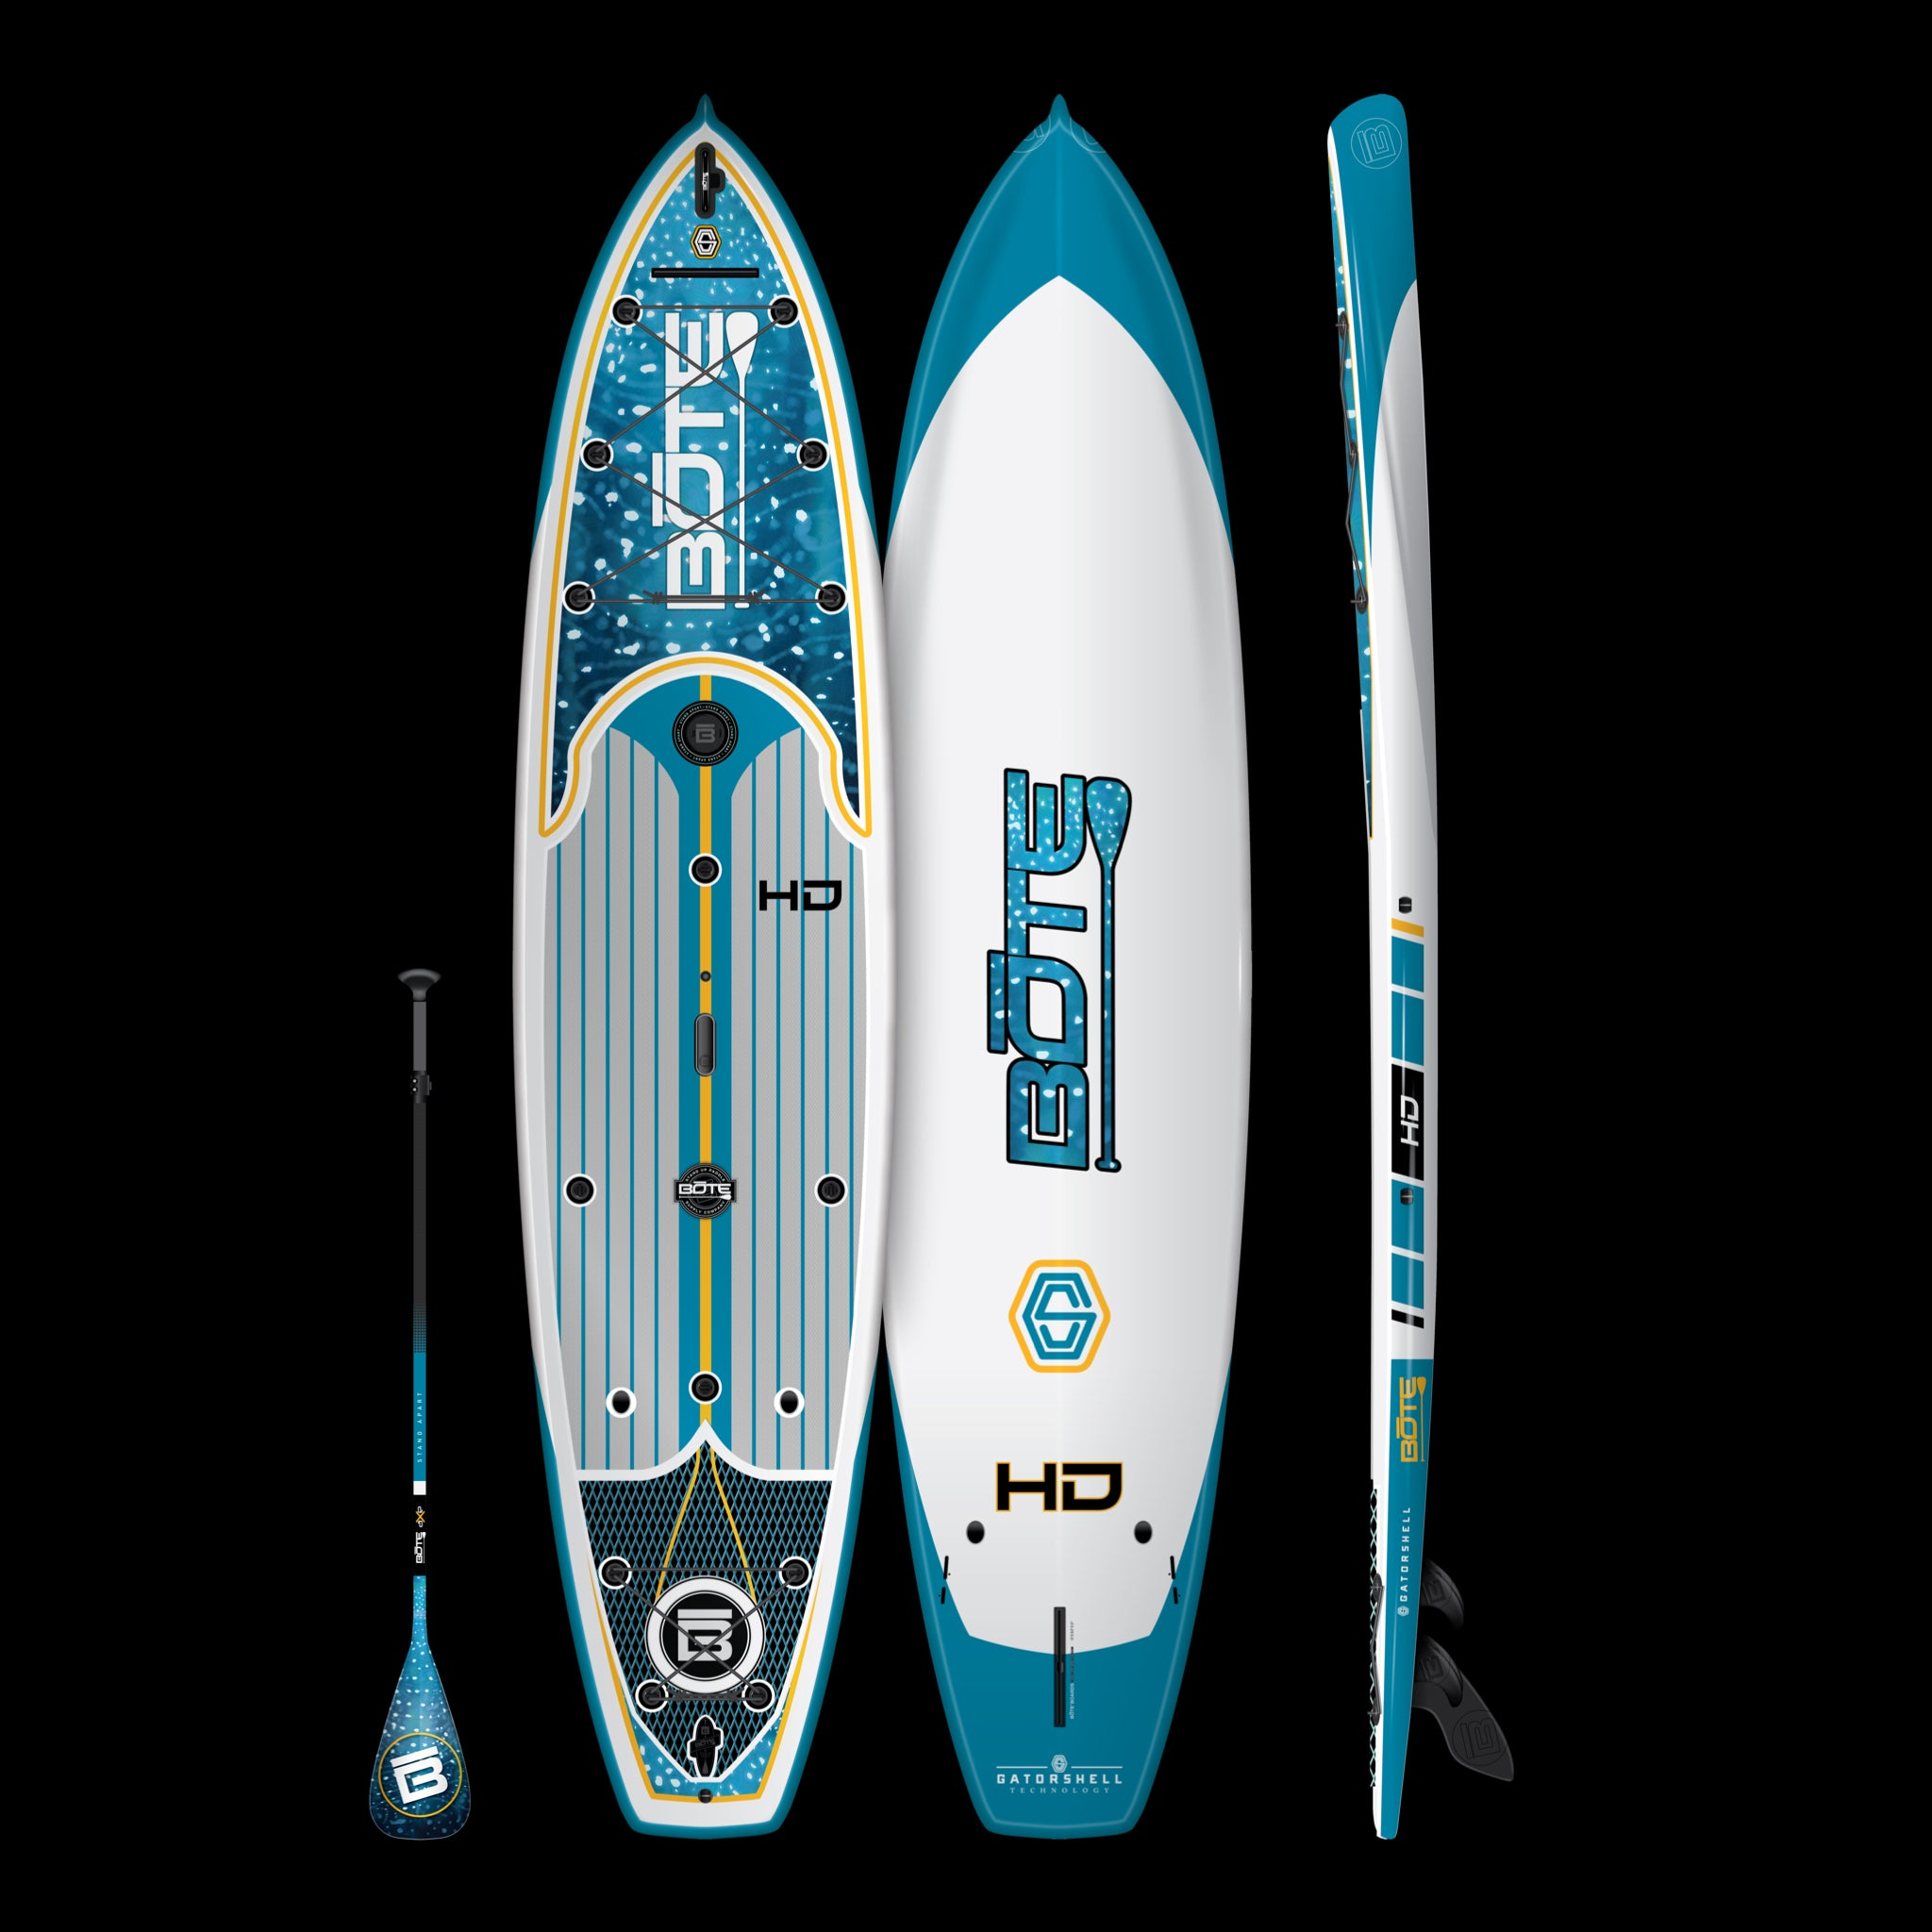 HD Paddle Board